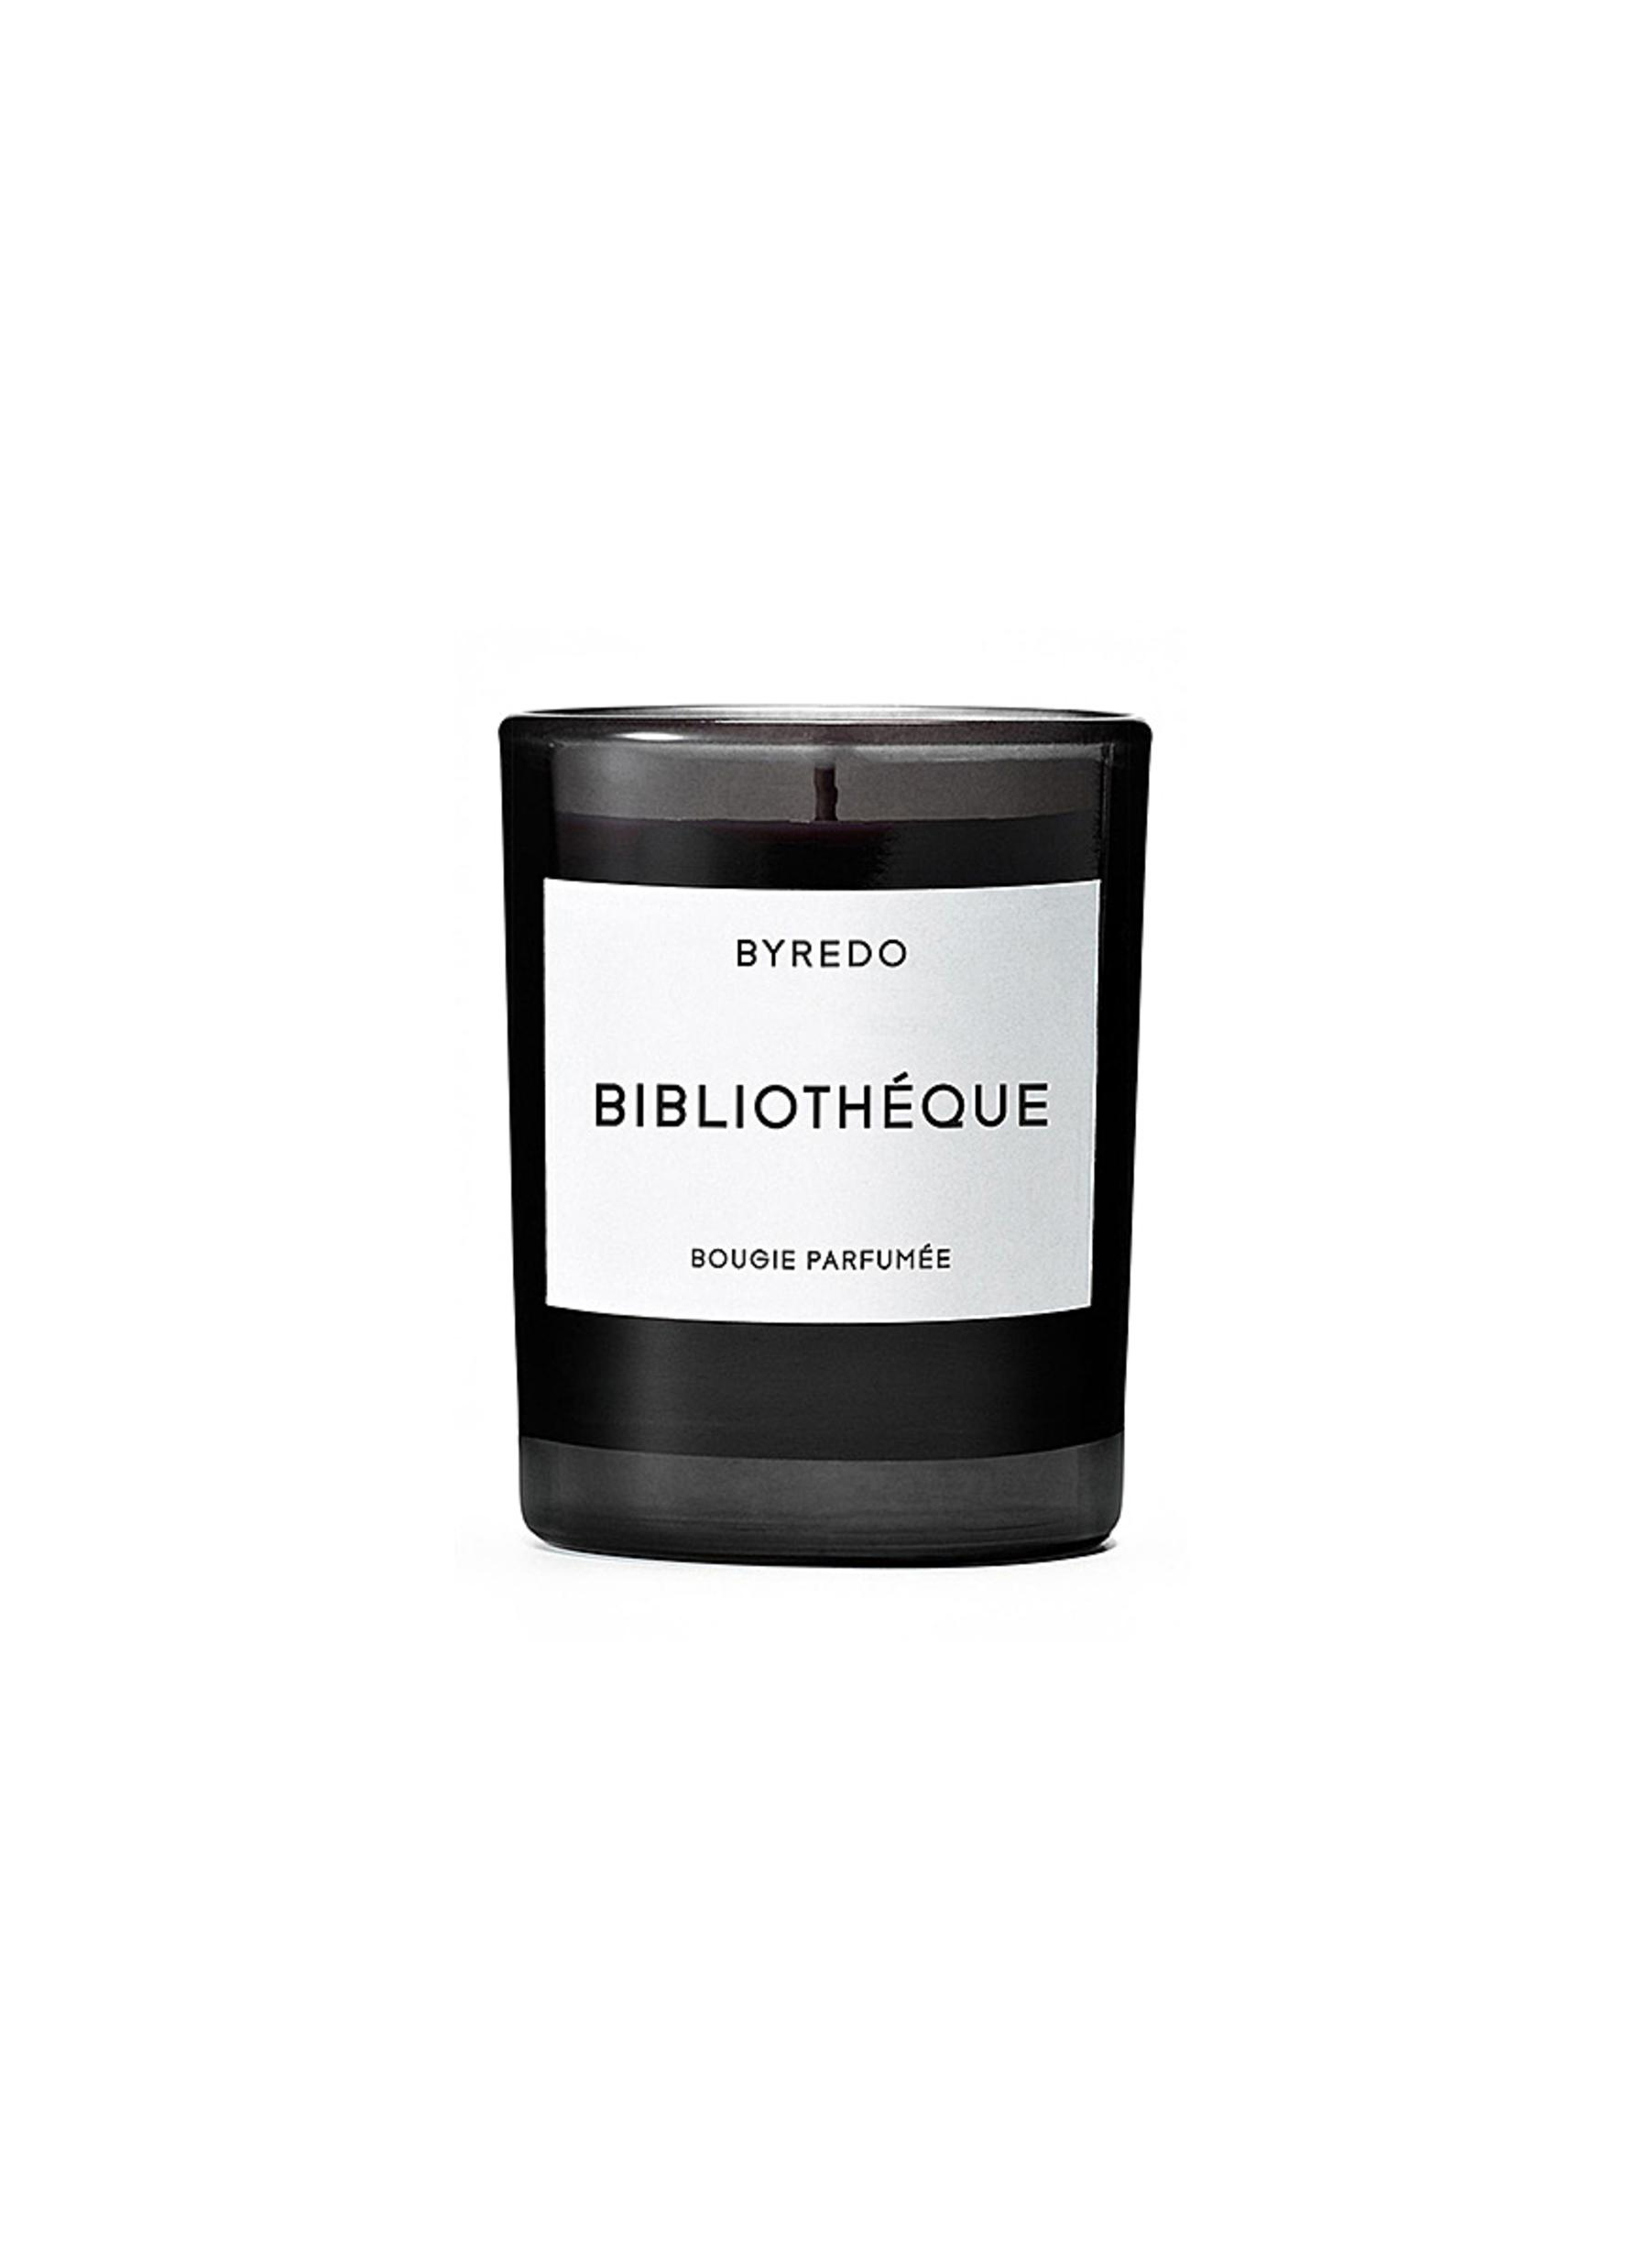 Bibliothéque mini fragranced candle 70g by BYREDO